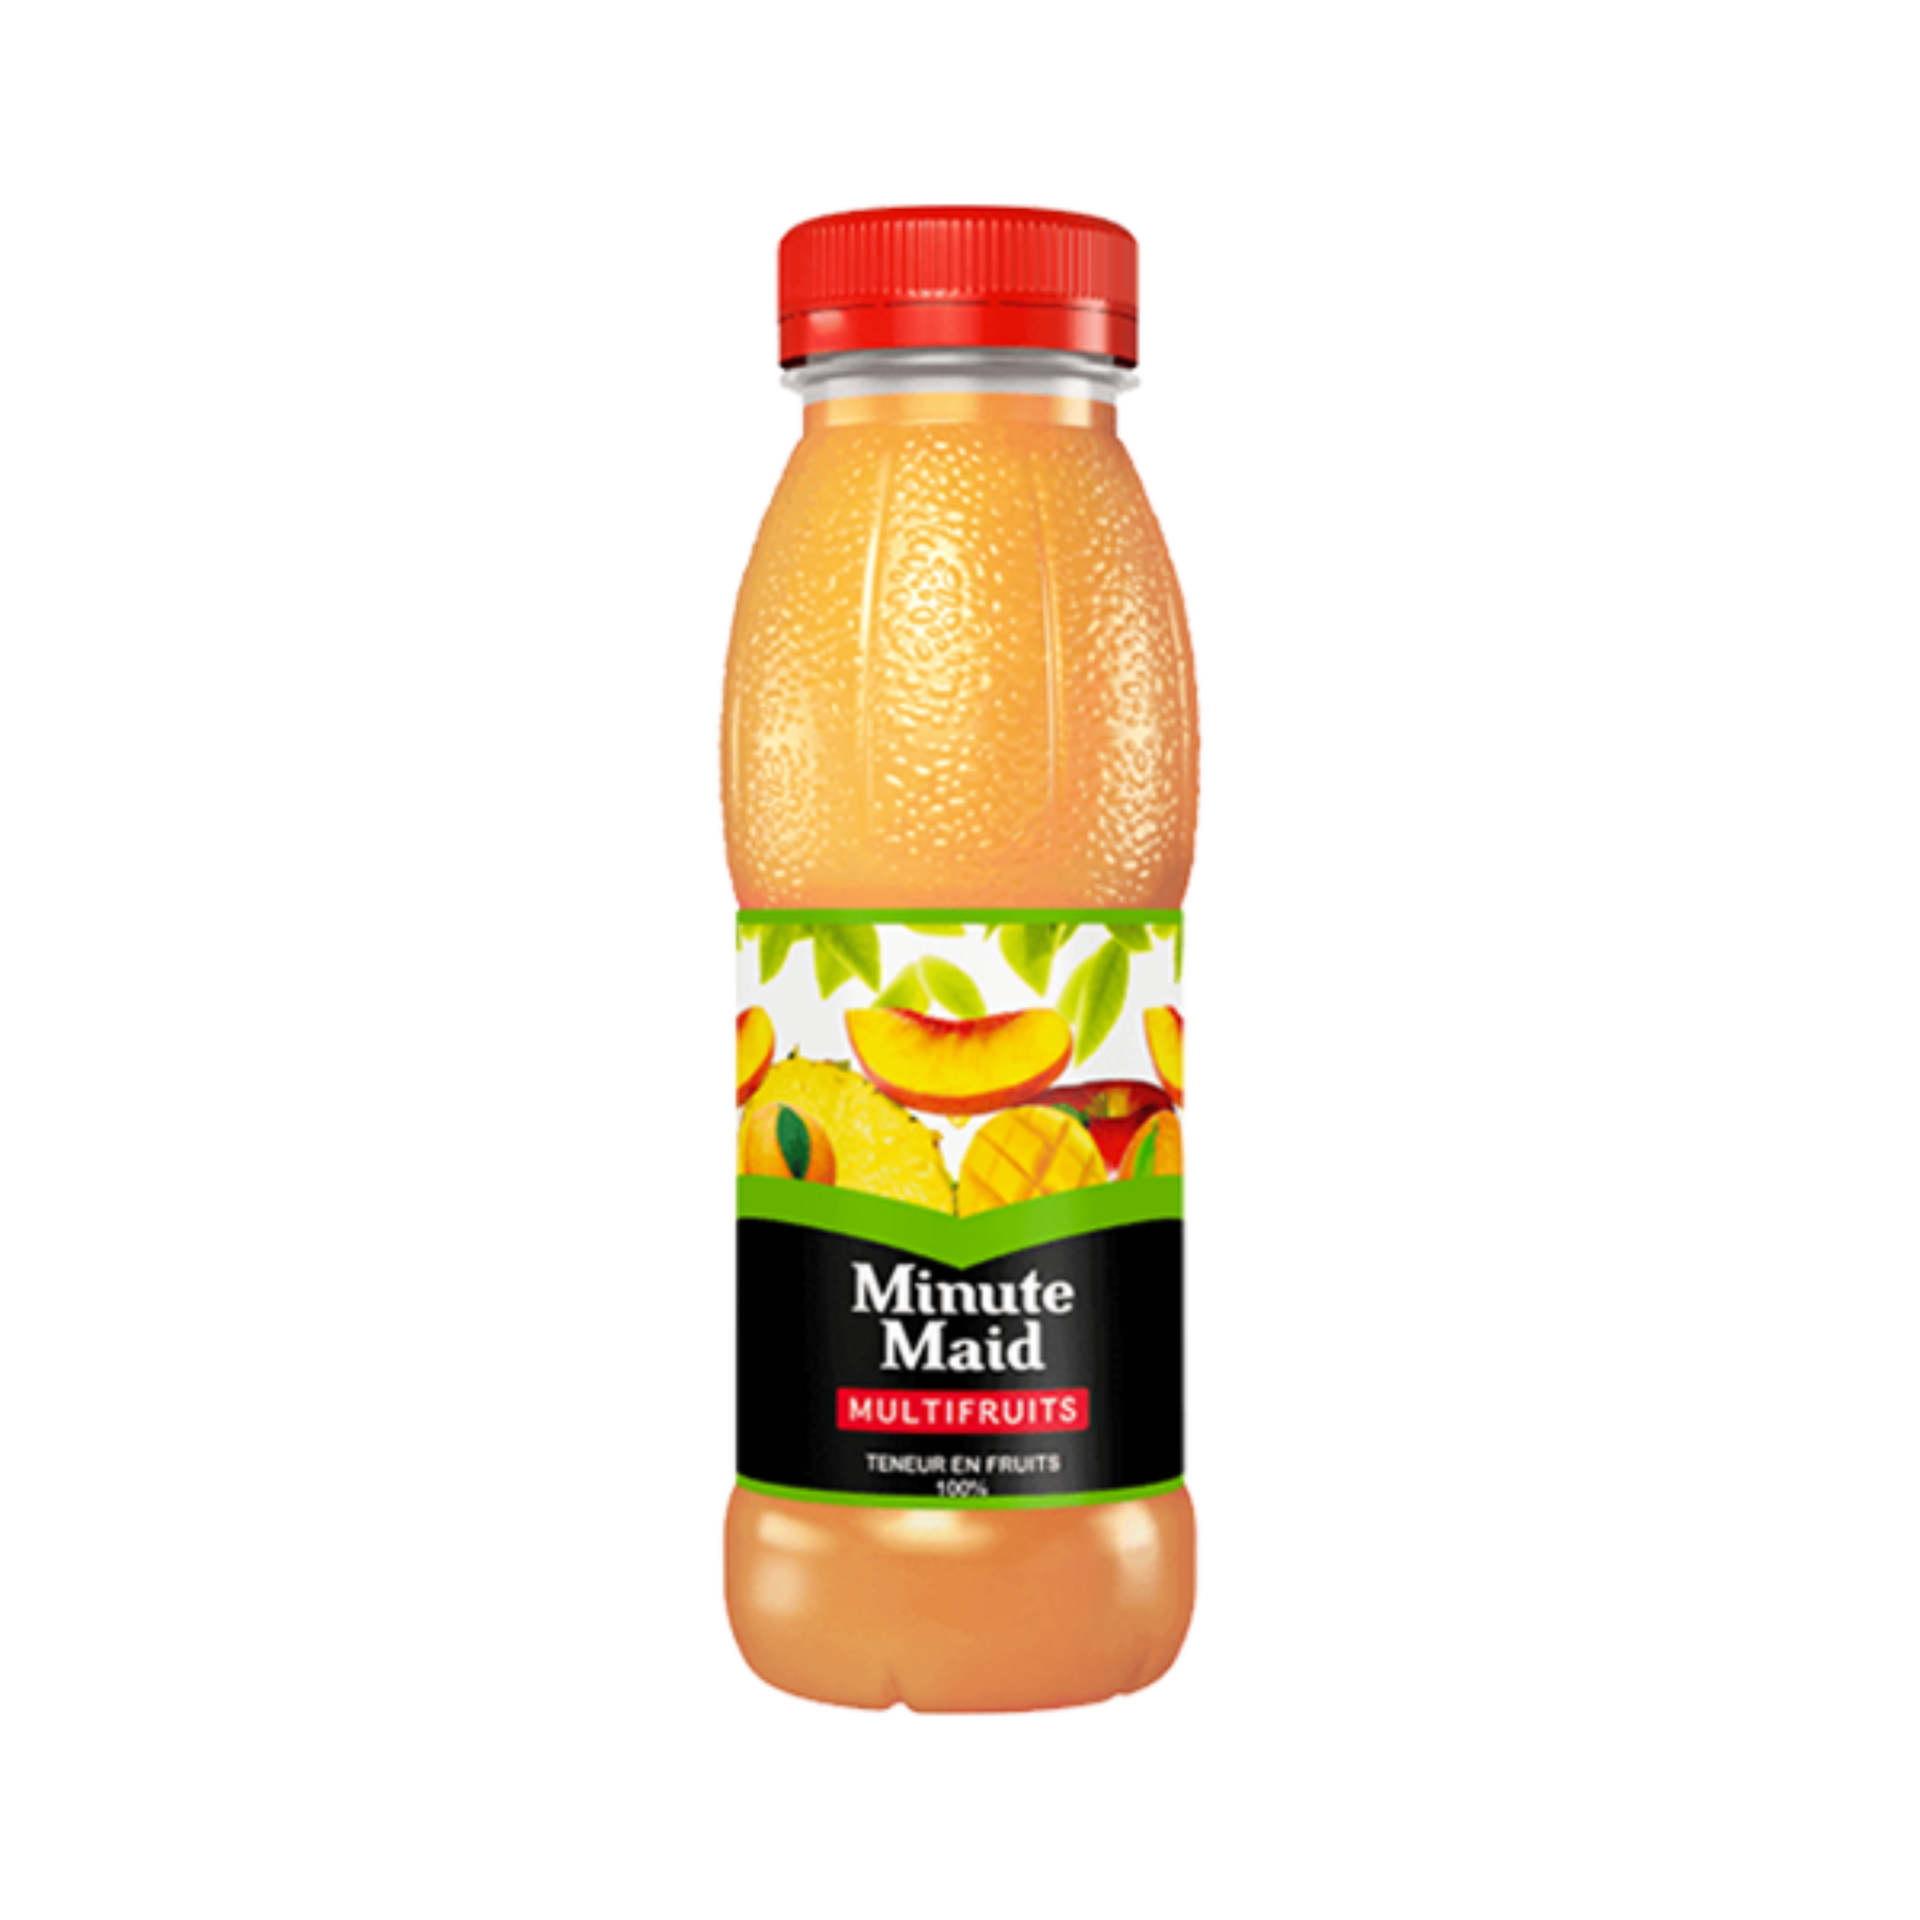 Minute Maid Multifruits 20cl